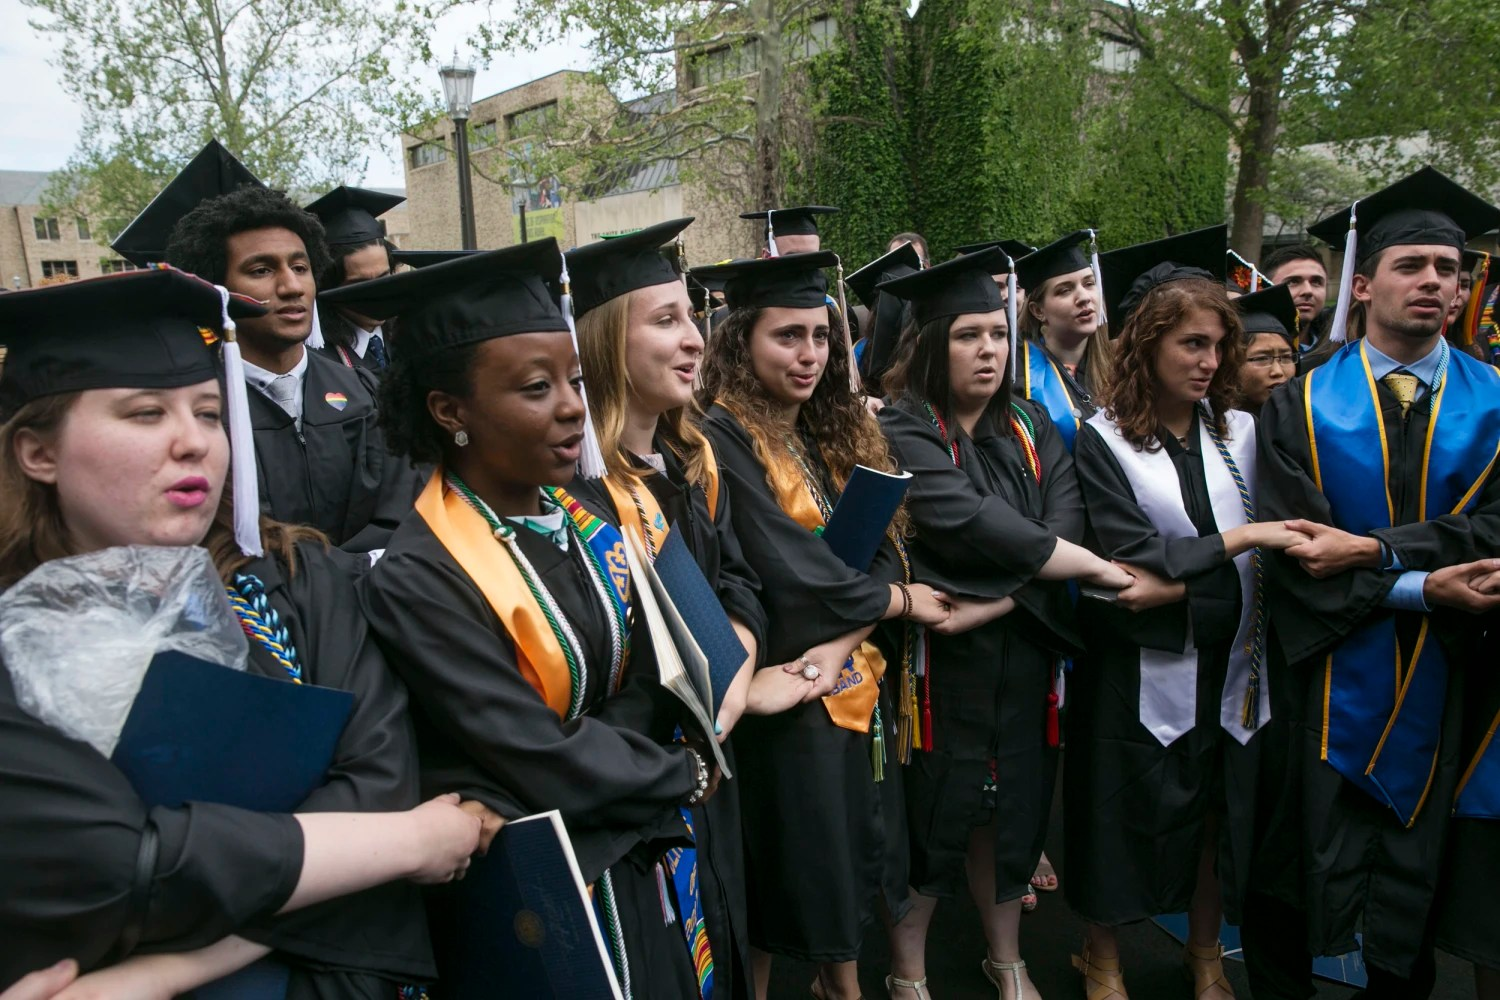 Students walk out of Mike Pence's commencement address